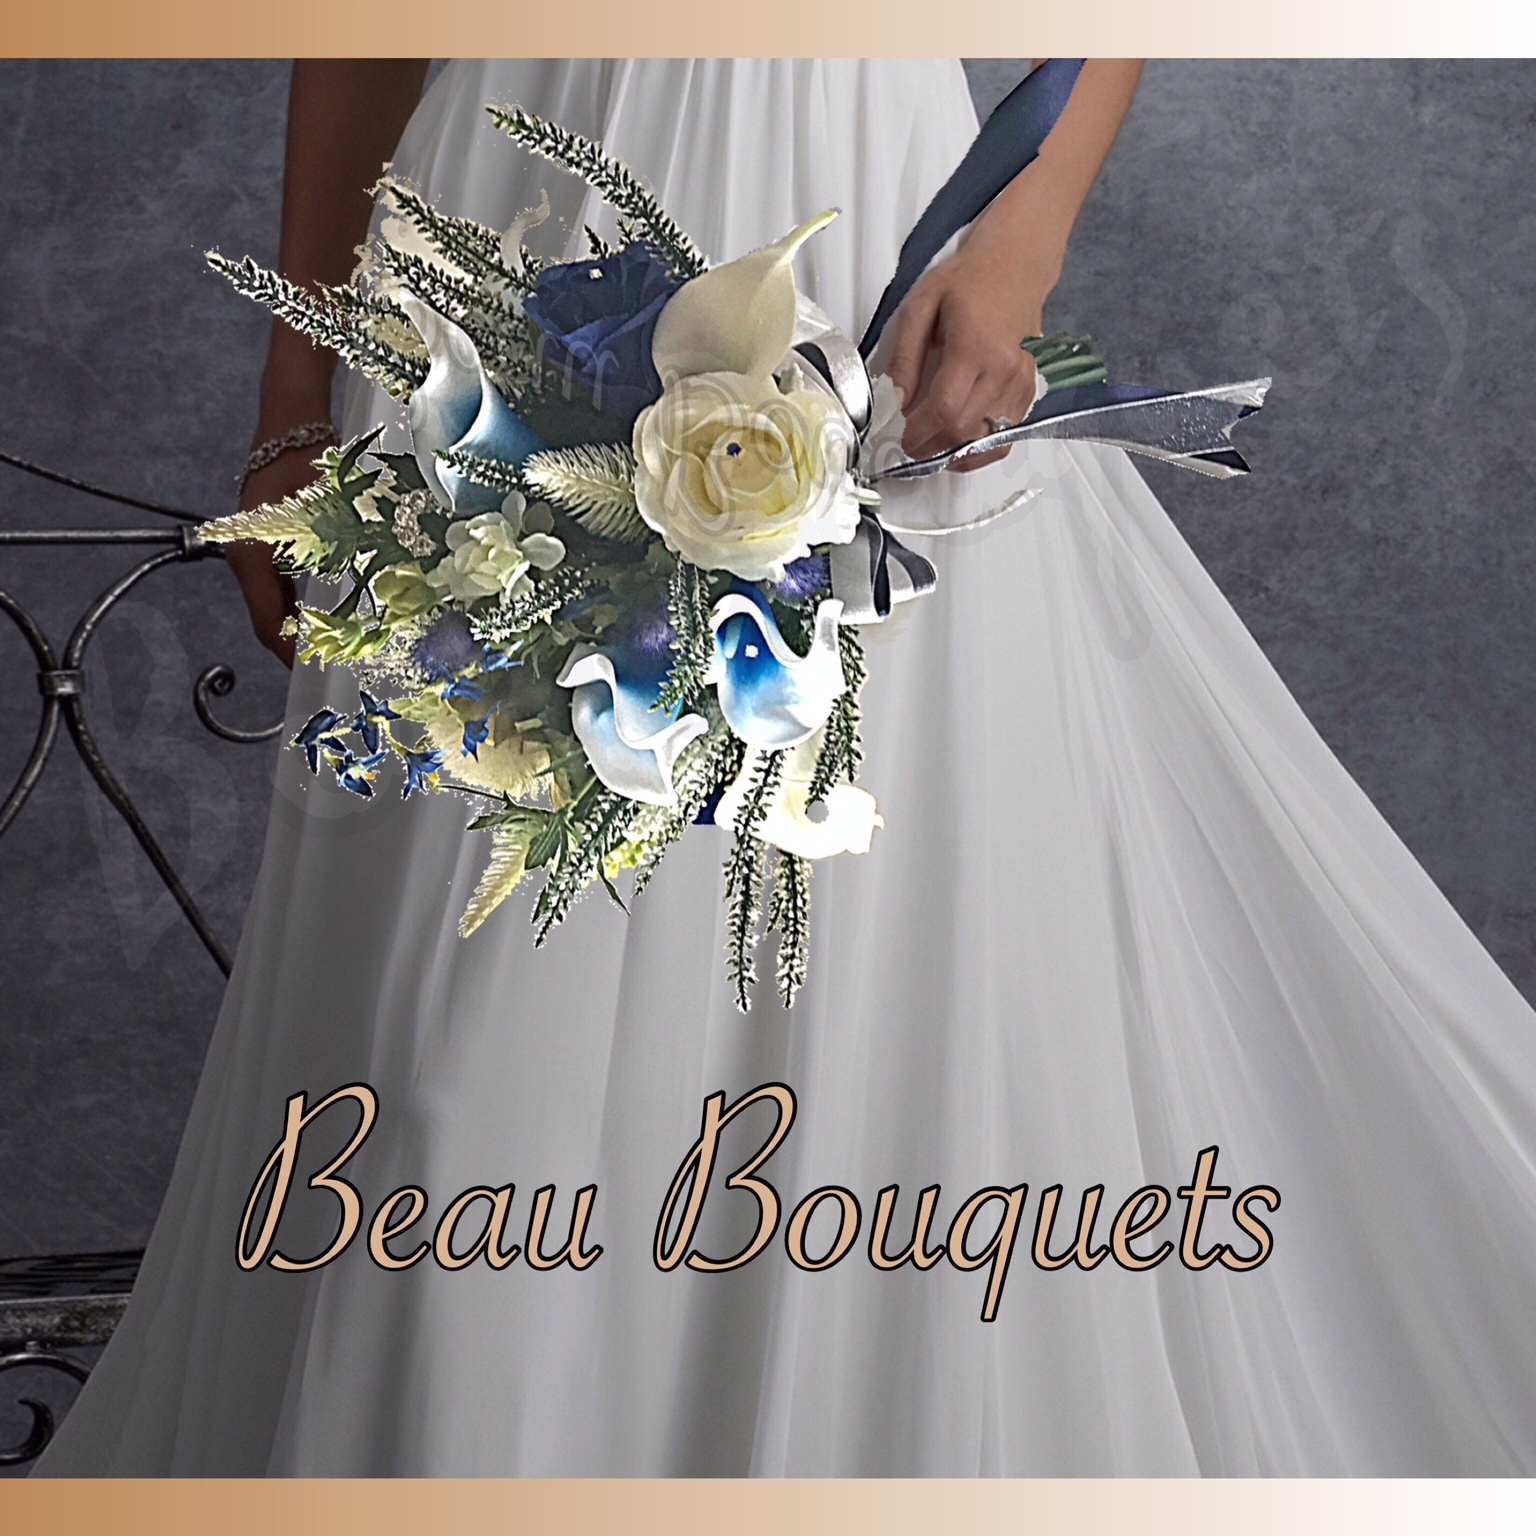 ENCHANTING - SCOTTISH SPRAY BRIDE BOUQUET Scottish heather, thistles, roses & real touch calla lilies with diamante detail in Azure blue Navy & ivory -